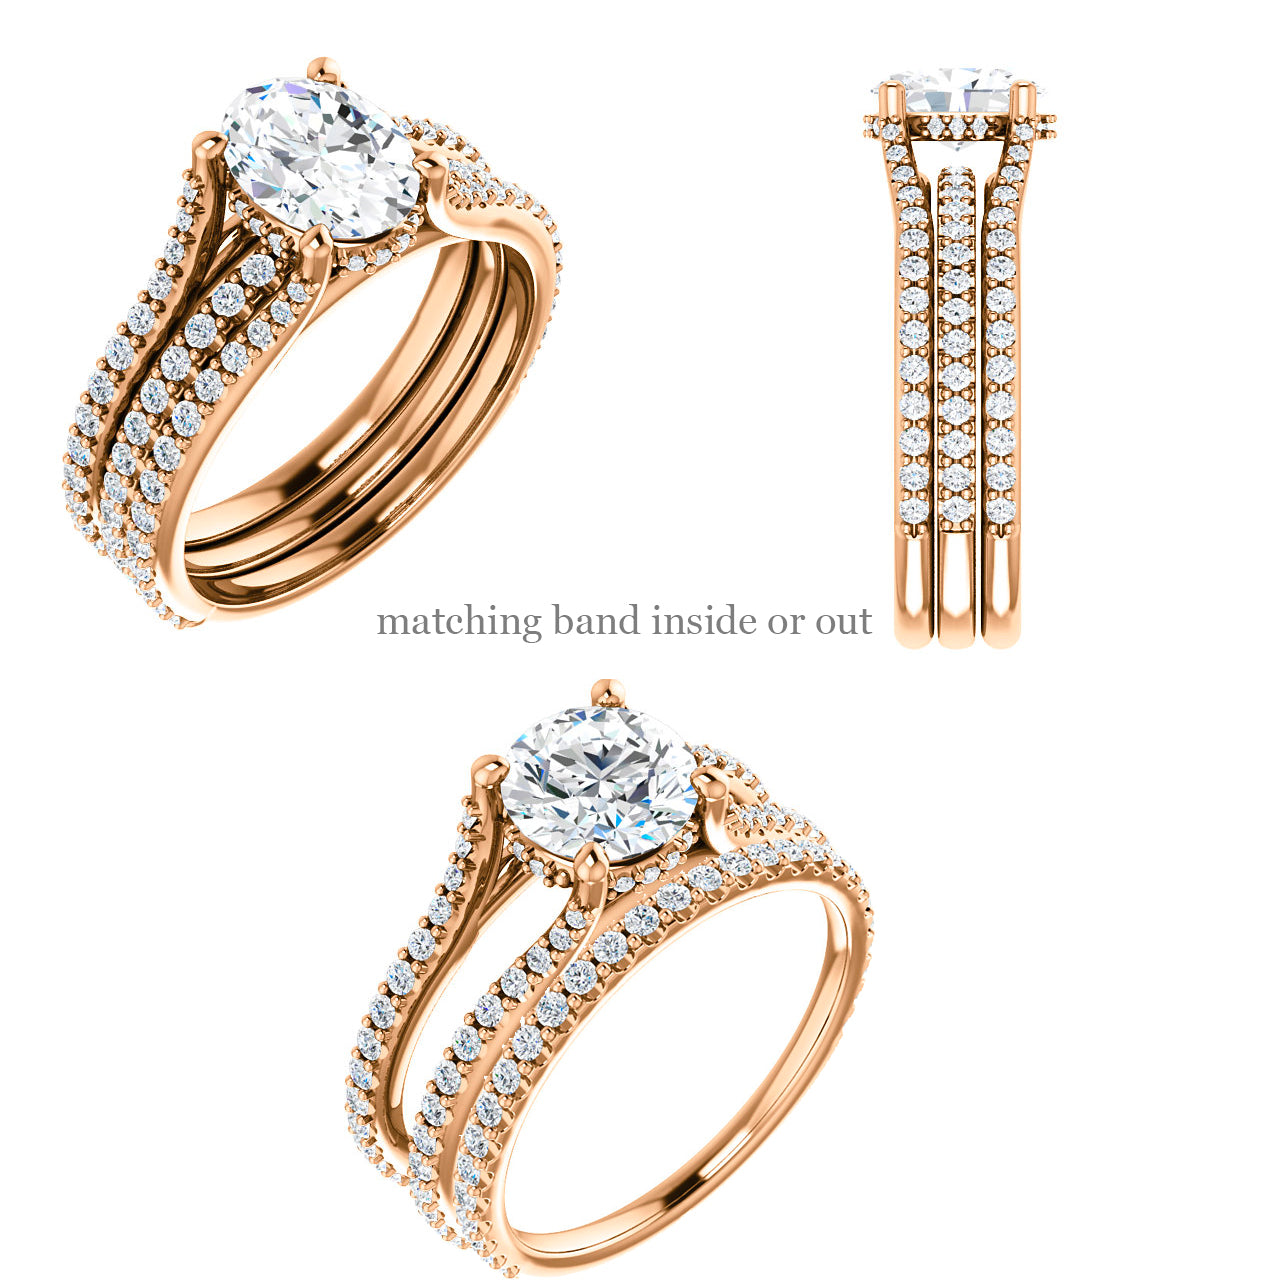 Ariel setting - Salt & Pepper Celestial Diamond Engagement Rings and Wedding Bands  by Midwinter Co.